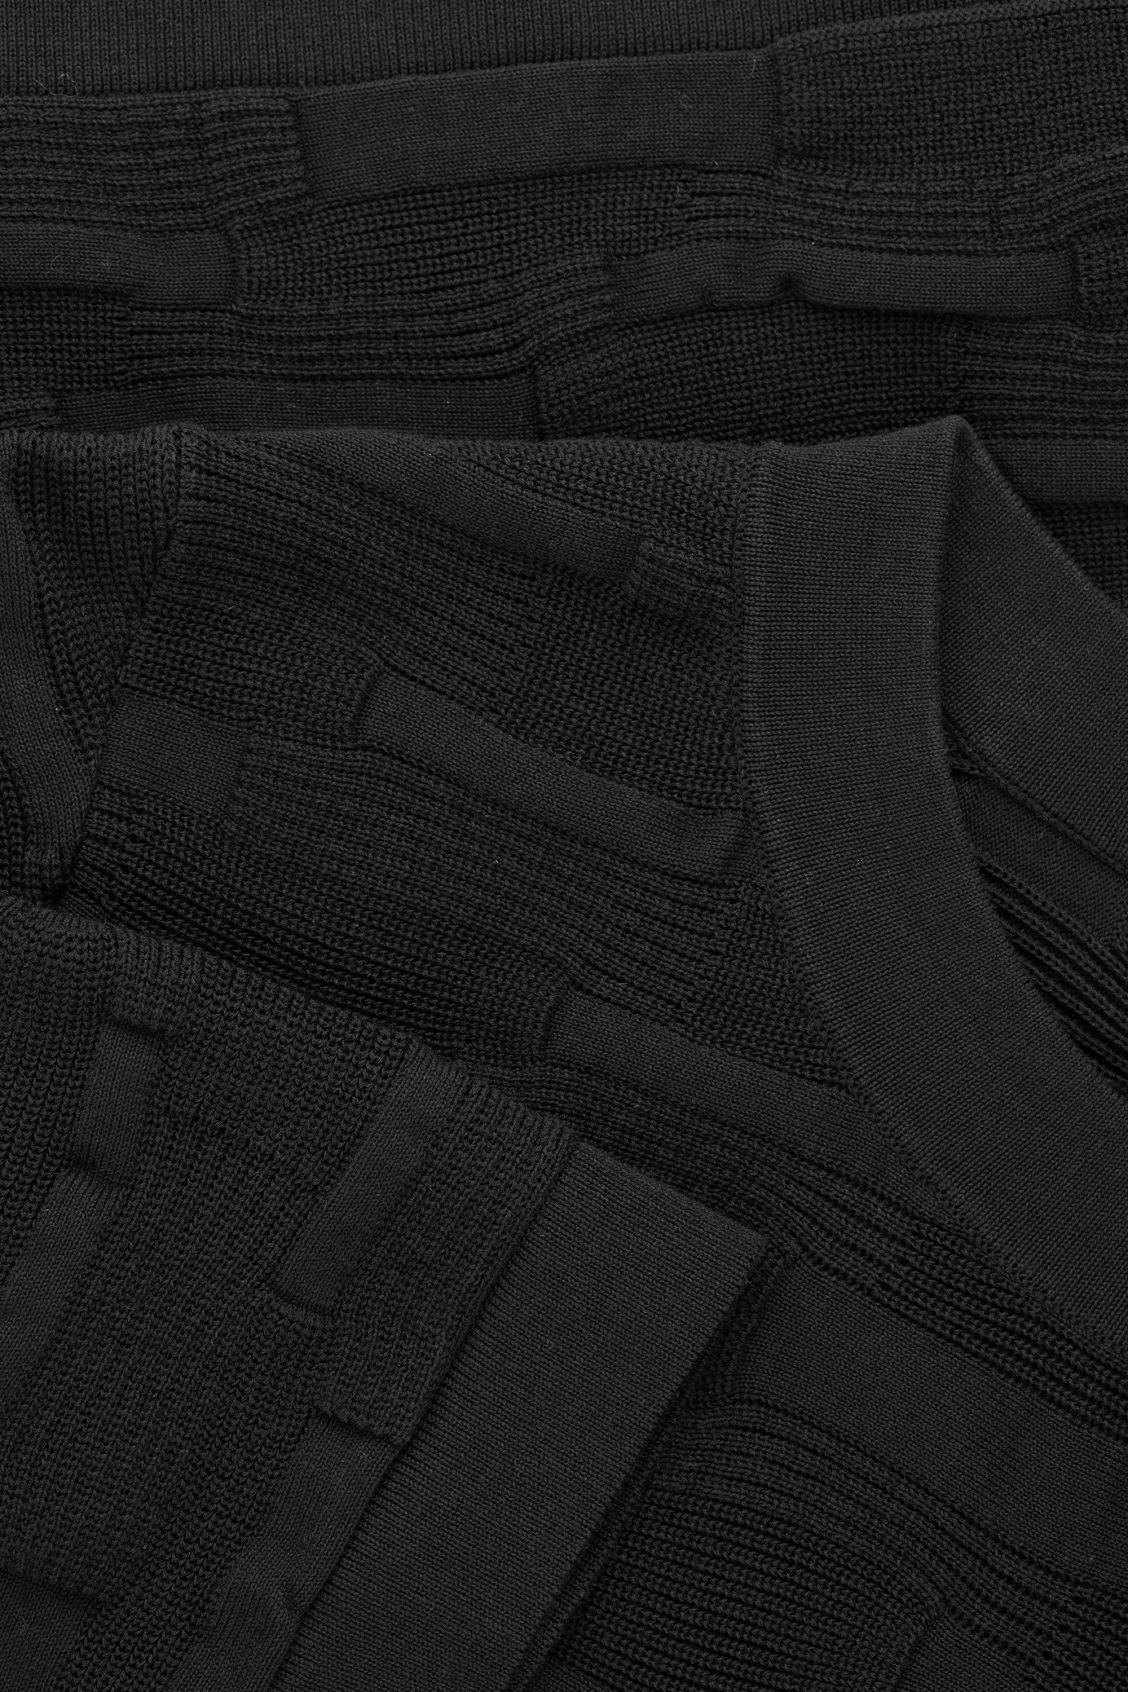 Side image of Cos irregular-stitch knit top in black